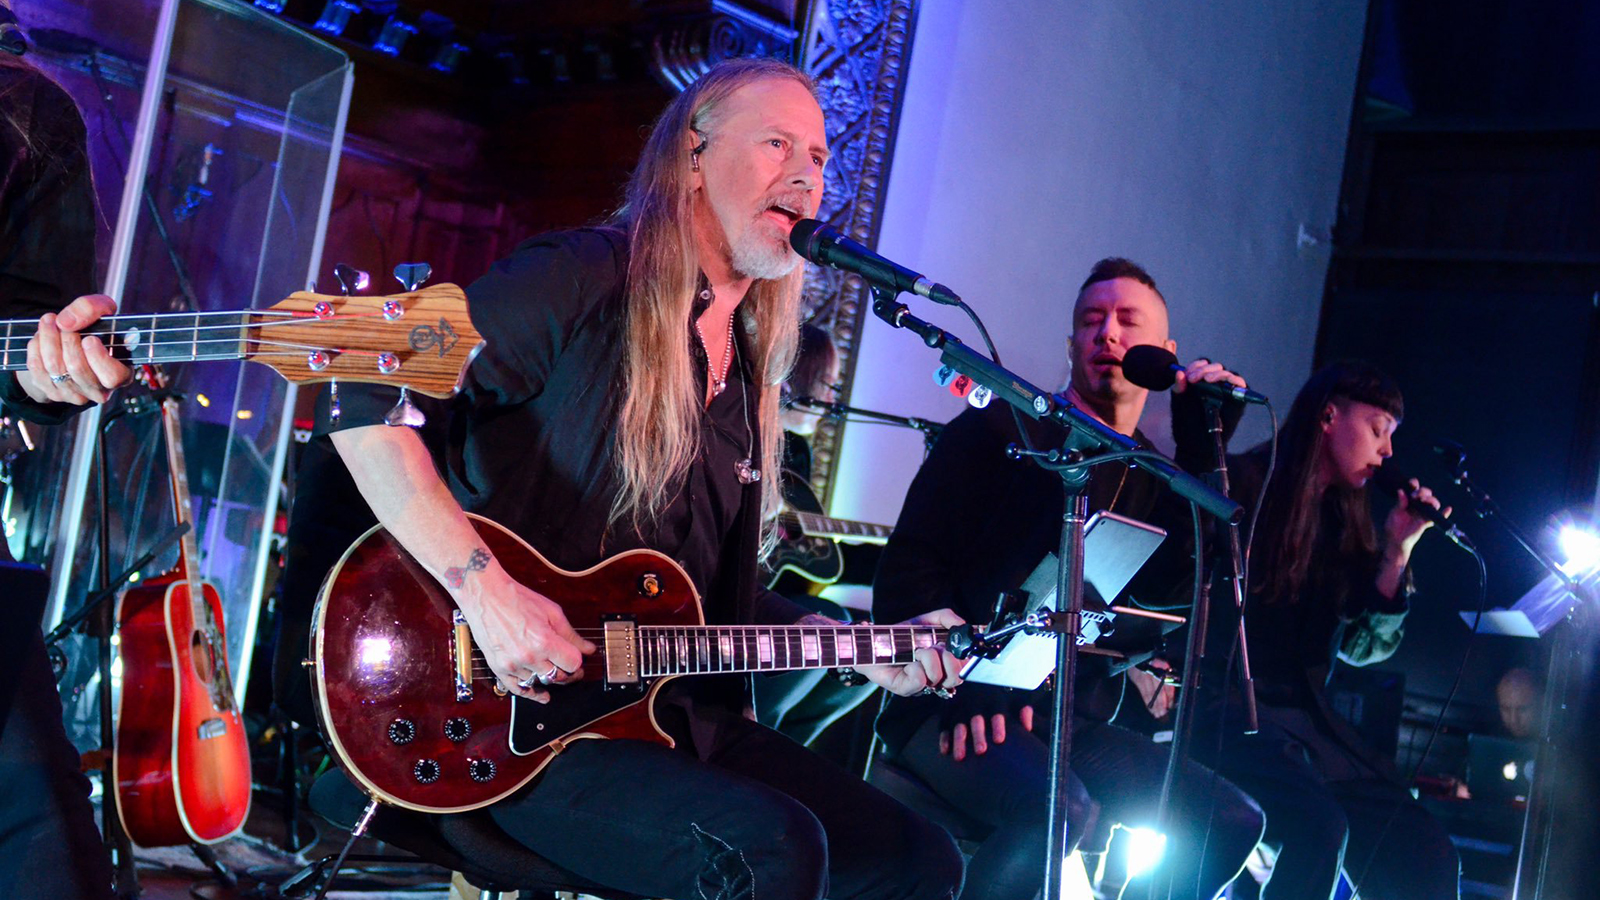 Video: Jerry Cantrell interpretó canciones de Alice in Chains junto a Greg Puciato